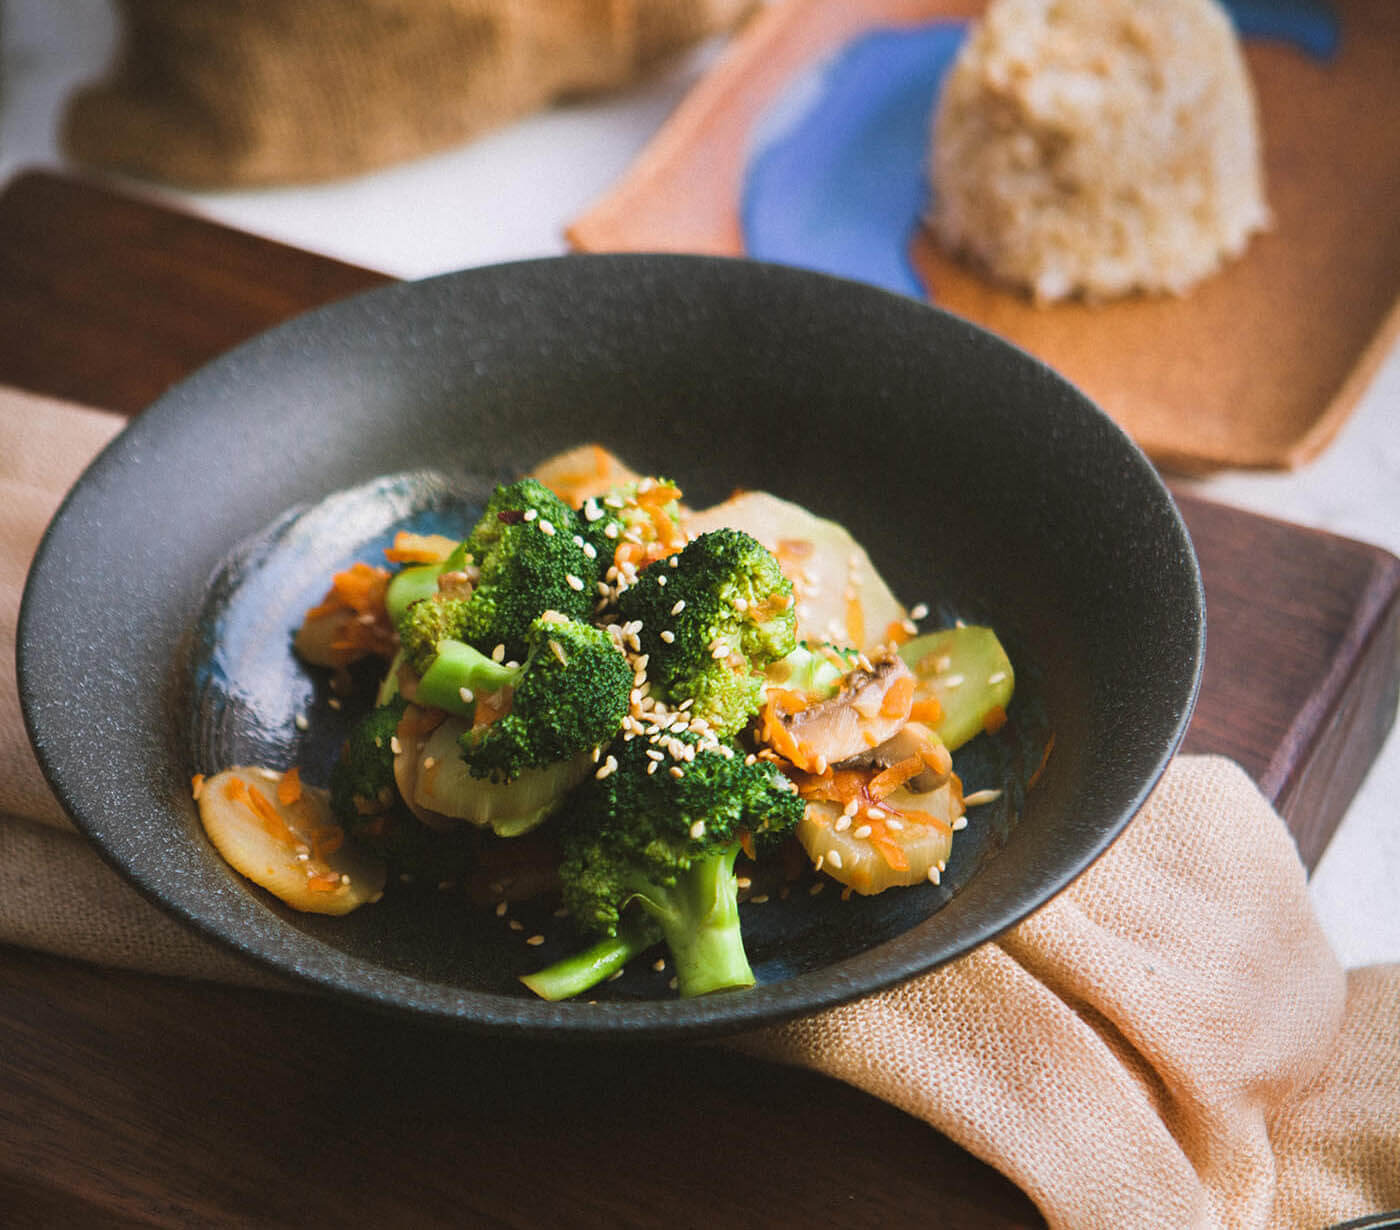 Colorful dish with broccoli